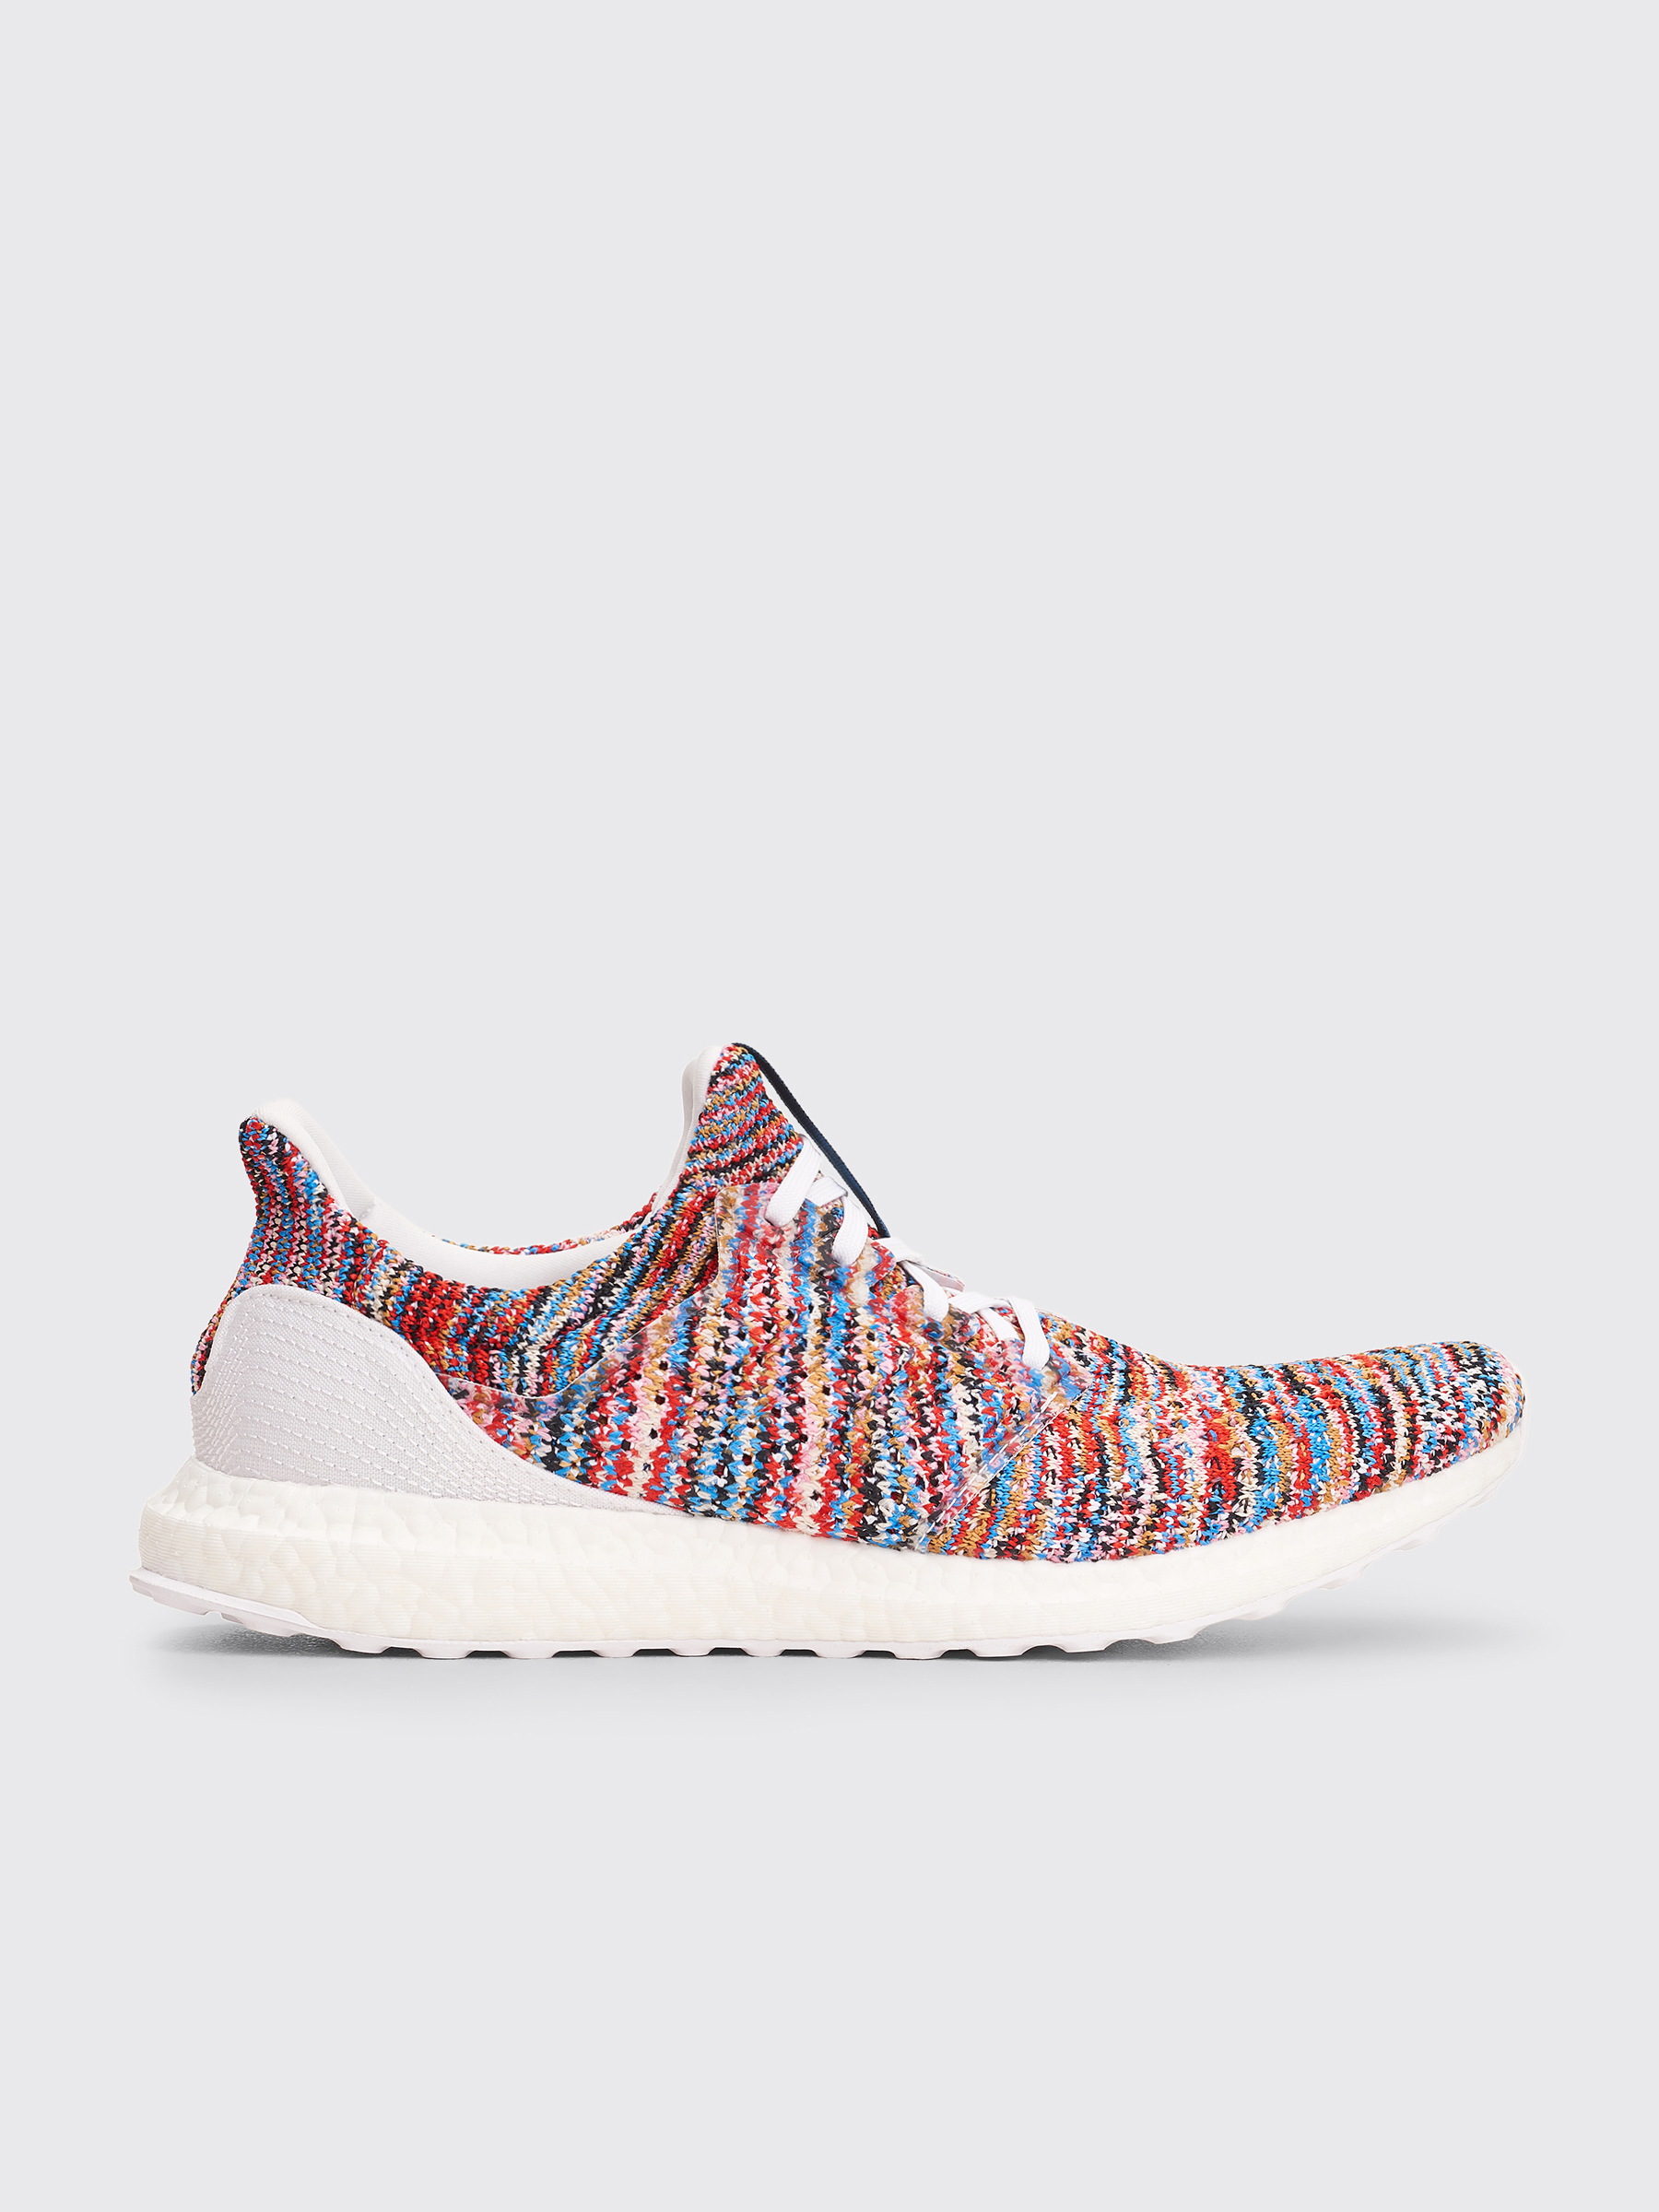 check out 06496 4084a Très Bien - adidas x Missoni Ultraboost CLIMA White   Cyan   Red